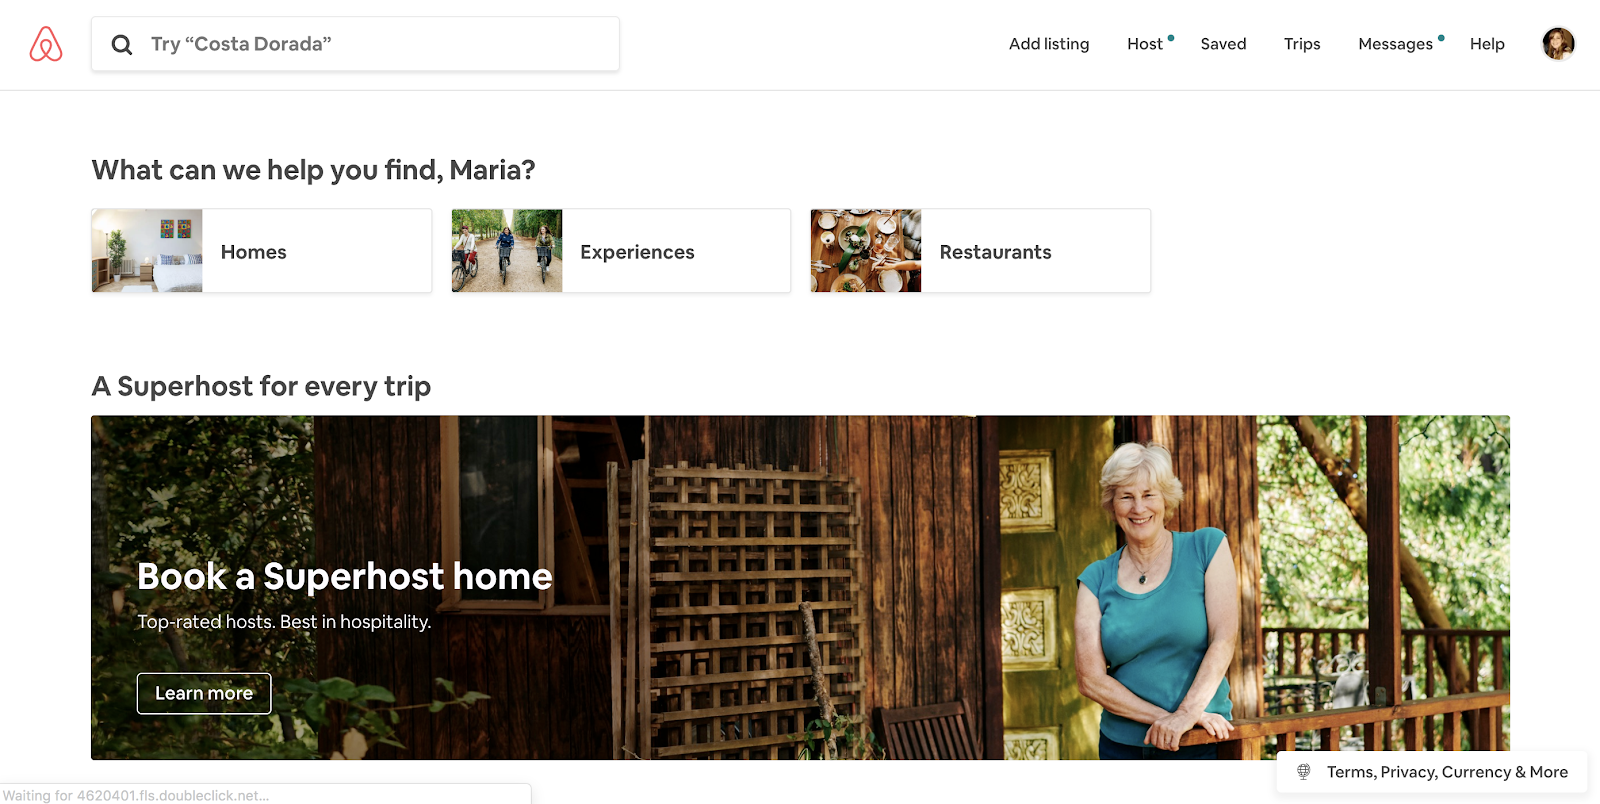 An example of microcopy in the search field, as used by Airbnb